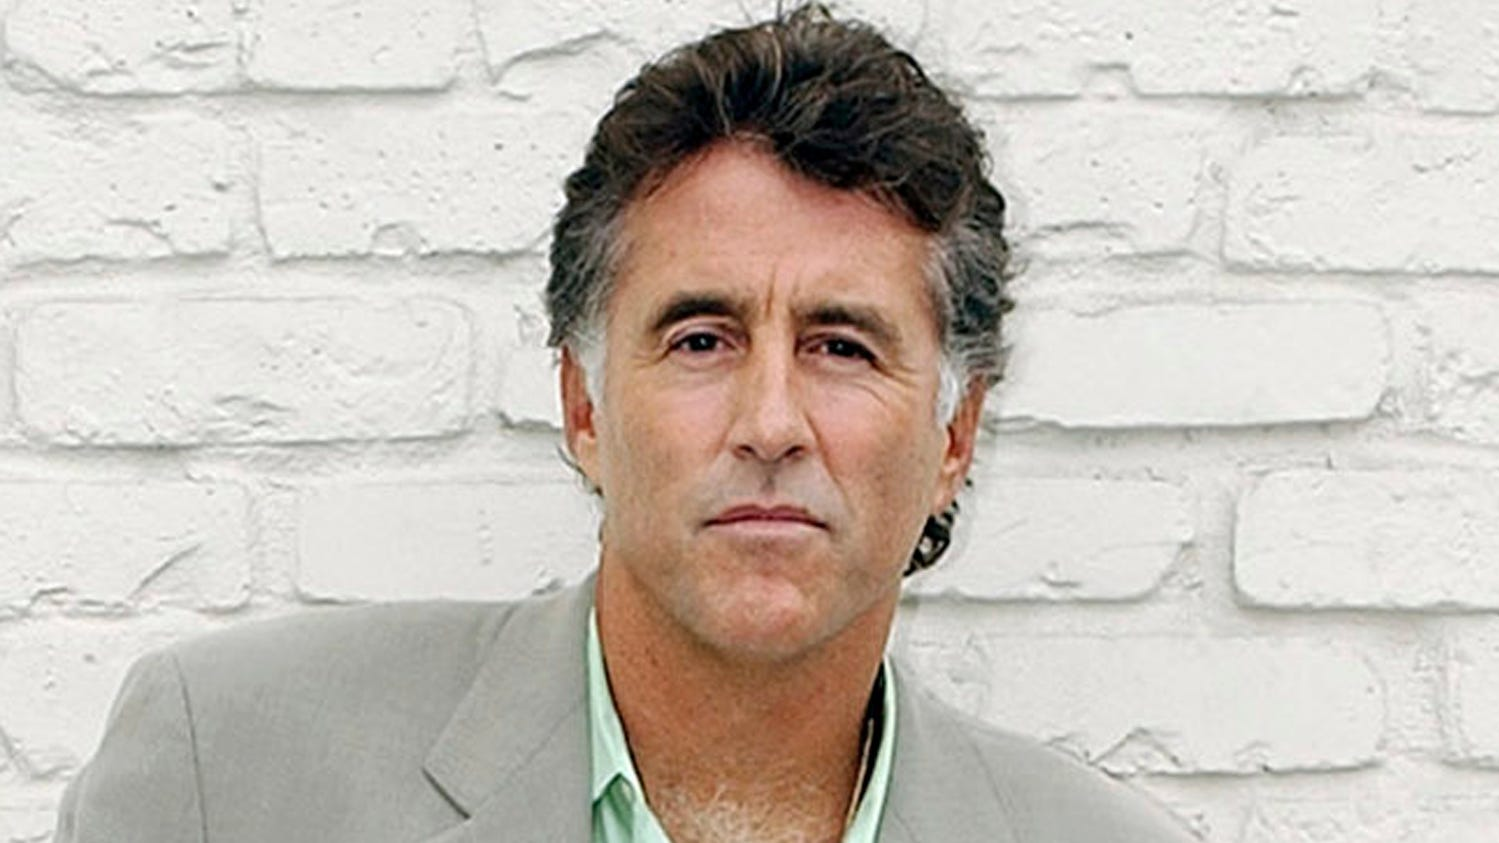 IMG CHRISTOPHER LAWFORD, Actor, Author and Nephew of JFK